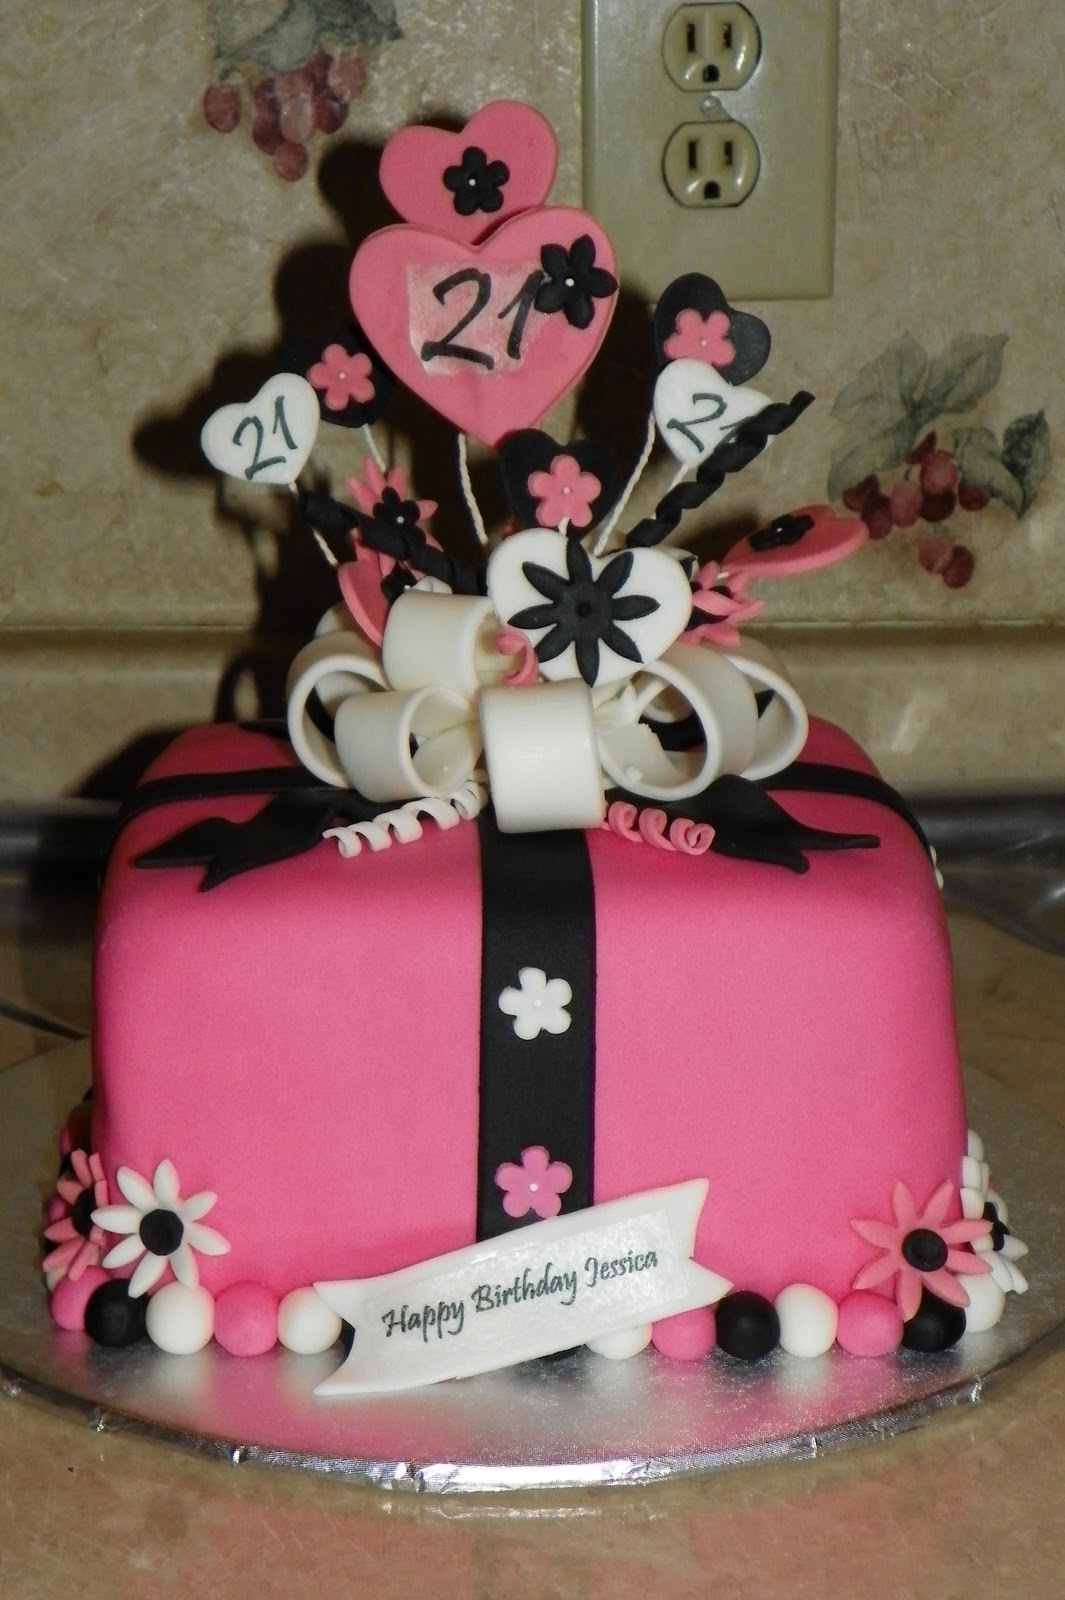 Cake Images For Teenager : MAV Cakes: Girly Birthday Cakes (Teens)